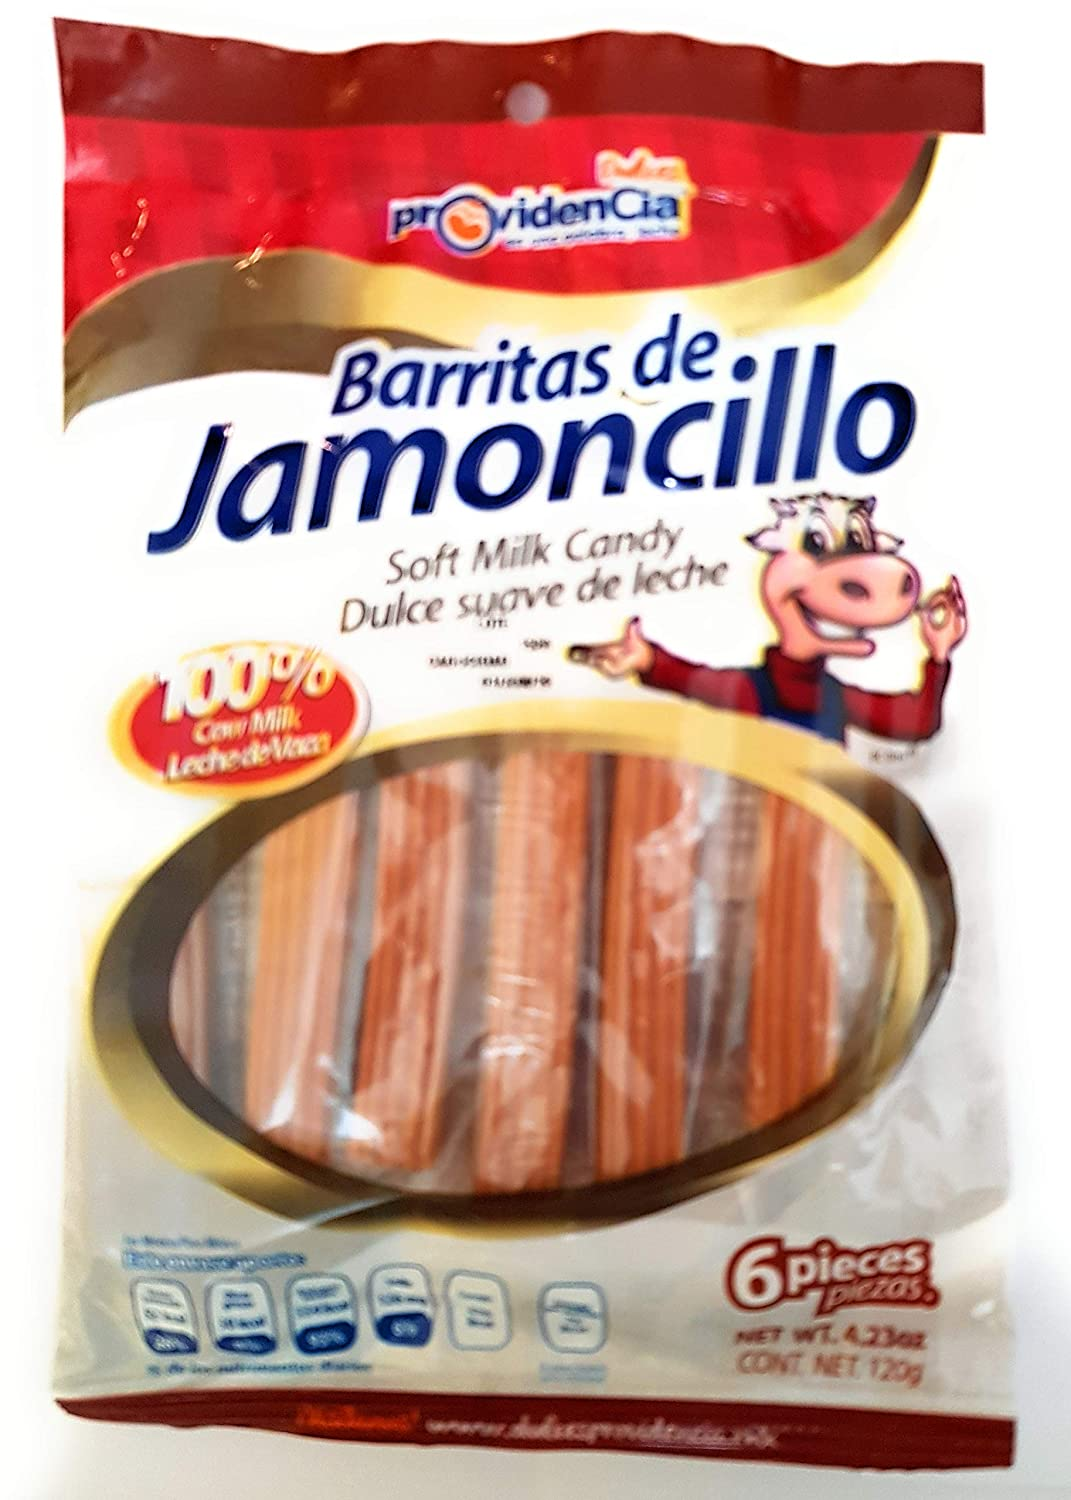 Amazon.com : Mexican Barritas de Jamoncillo (Milk Candy) 4.23oz (Pack of 3) and Resealable Bags : Grocery & Gourmet Food